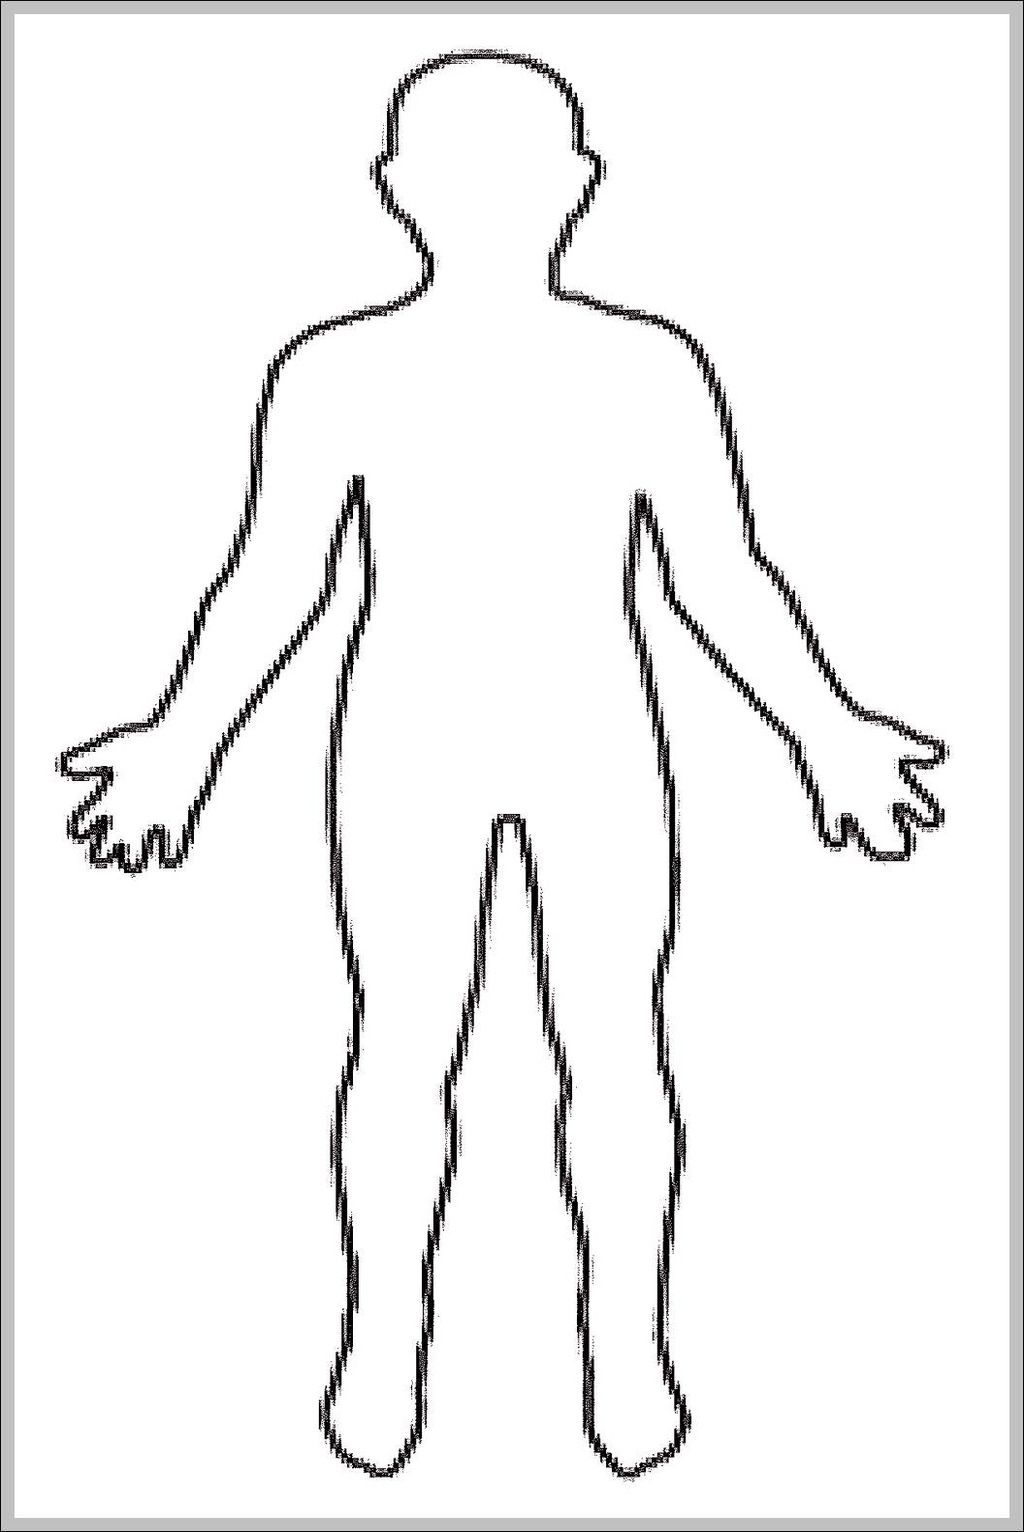 hight resolution of body diagram unlabeled wiring diagram img superior body diagram unlabeled